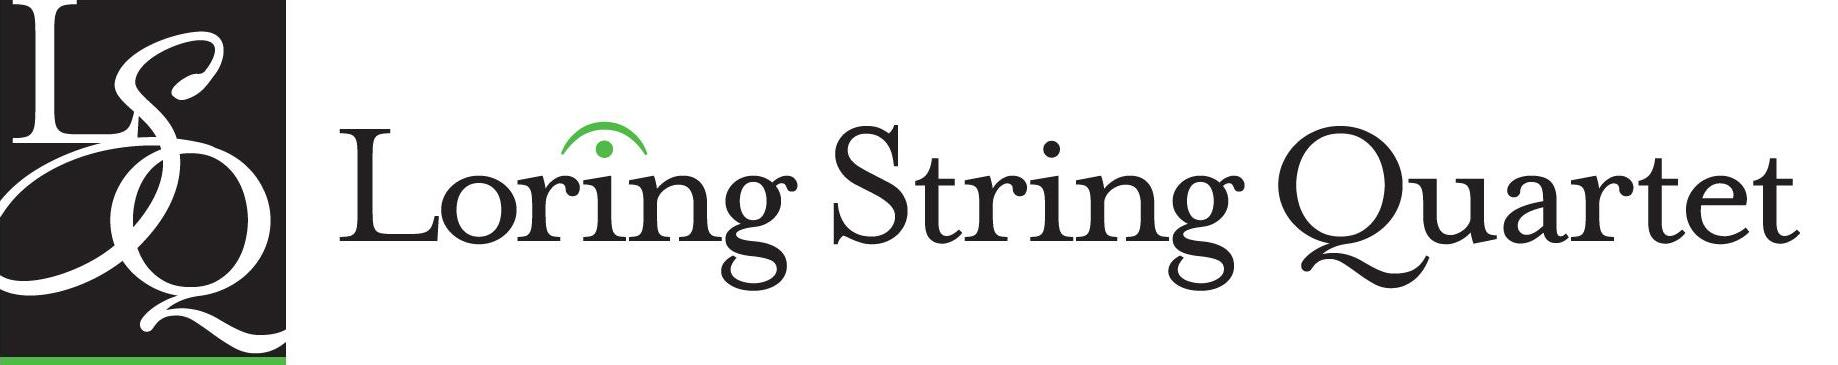 Loring String Quartet